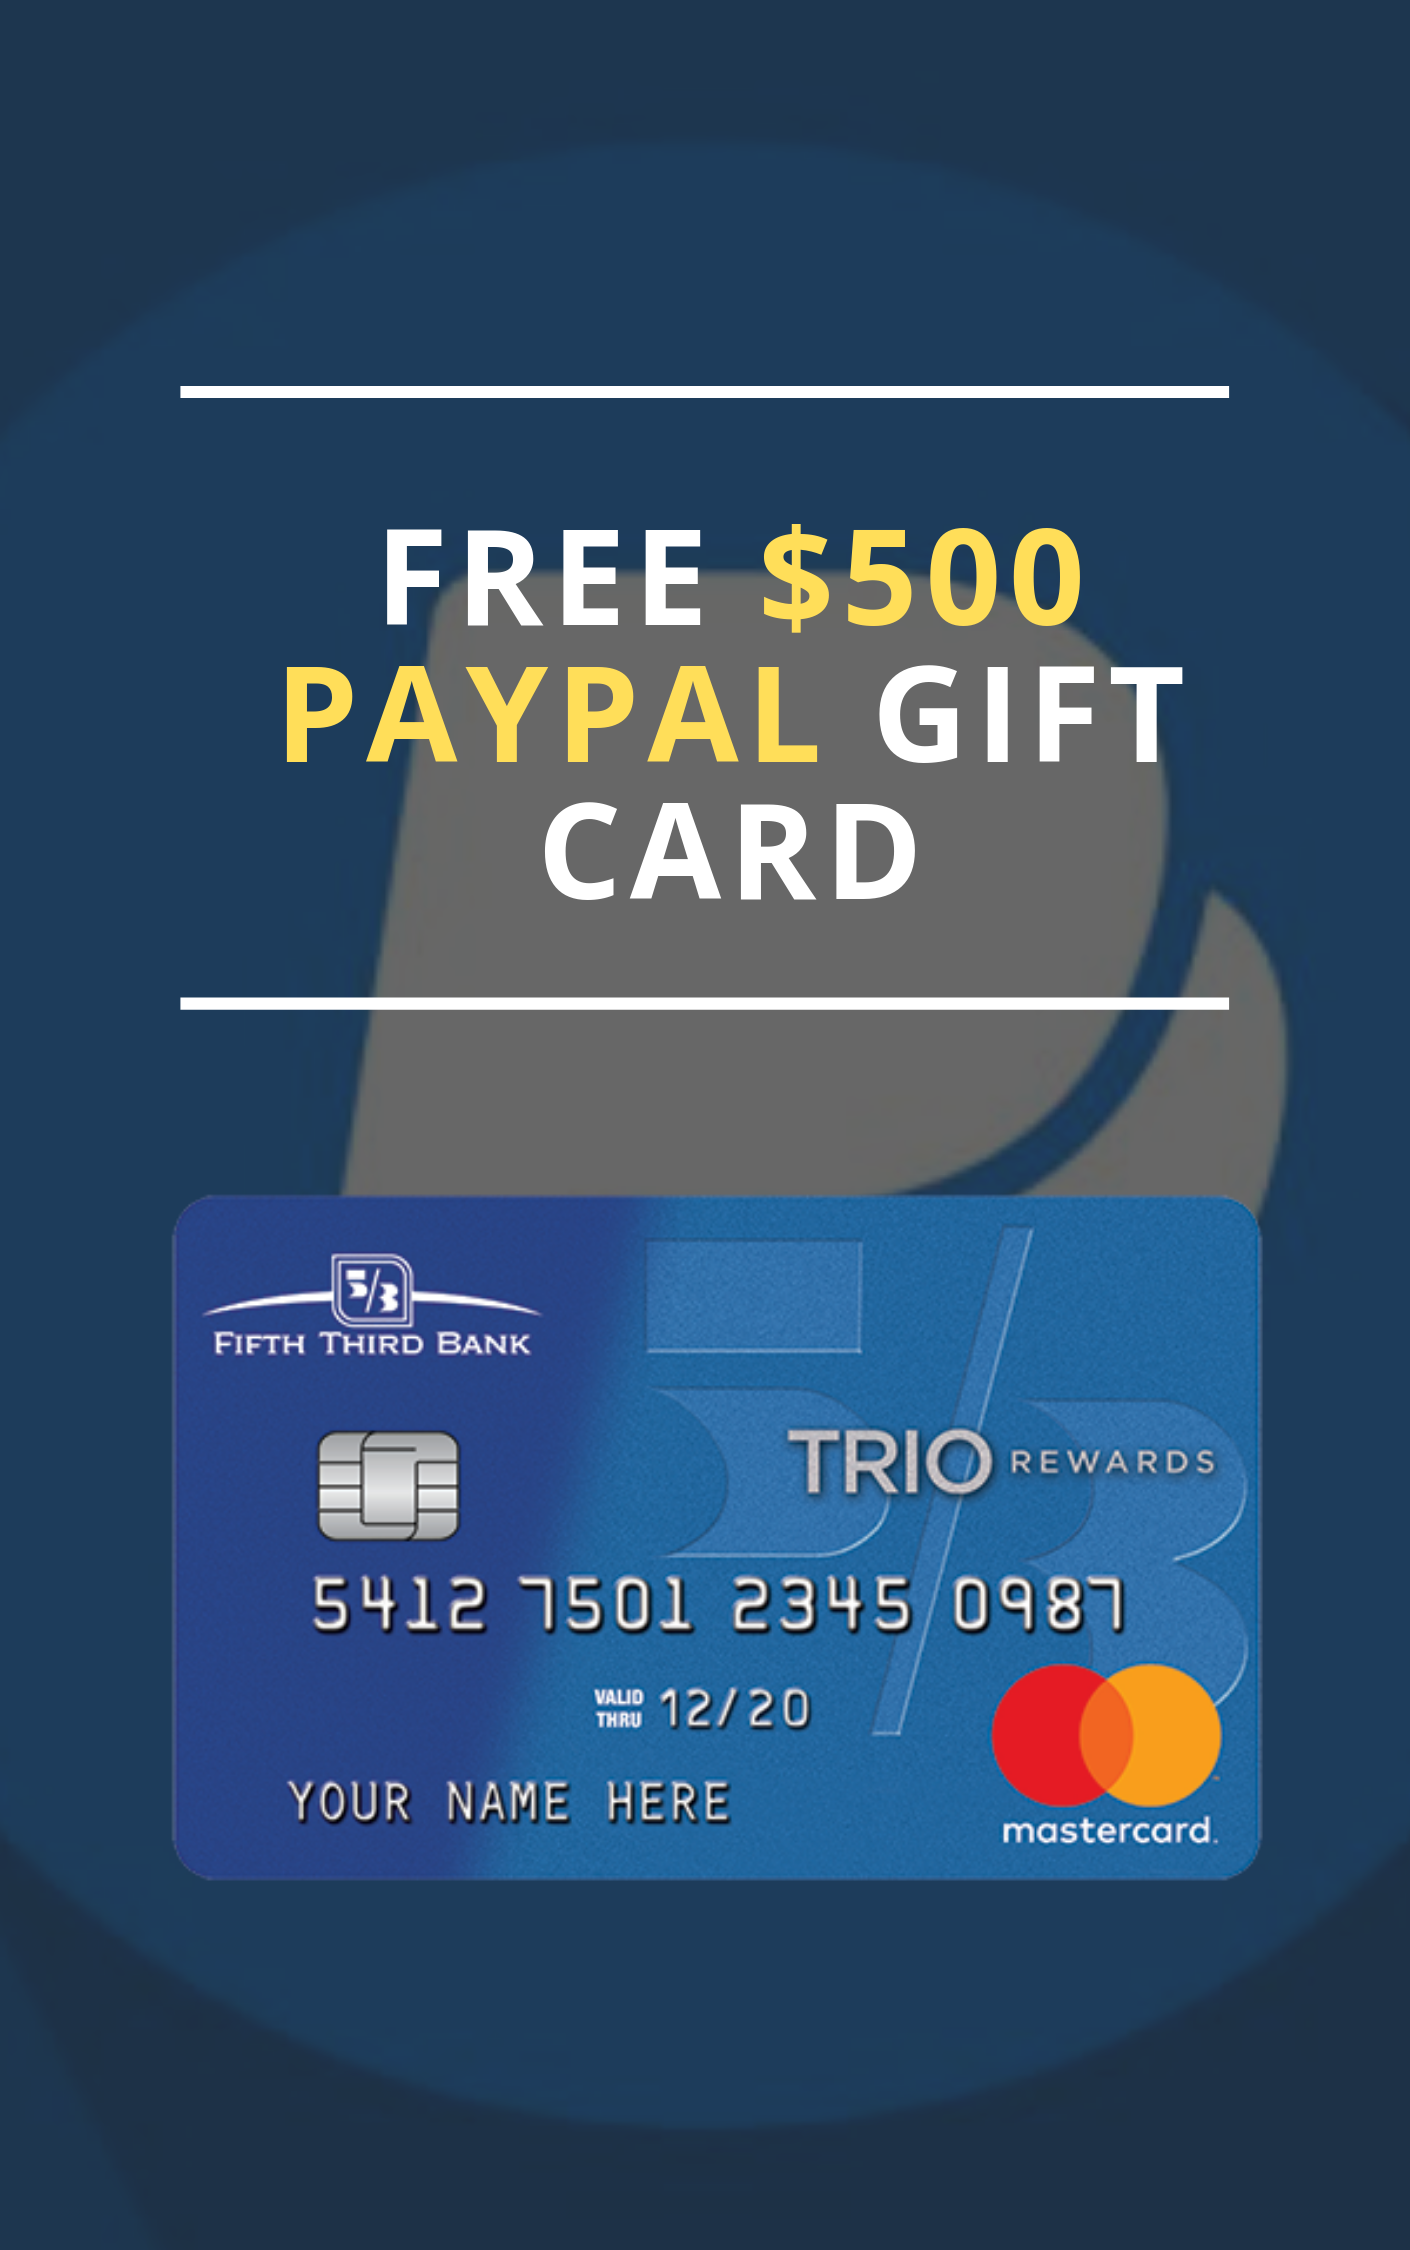 Paypal Cash 500 Giveaway In 2021 Free Paypal Gift Card In 2021 Paypal Gift Card Prepaid Gift Cards Gift Card Generator